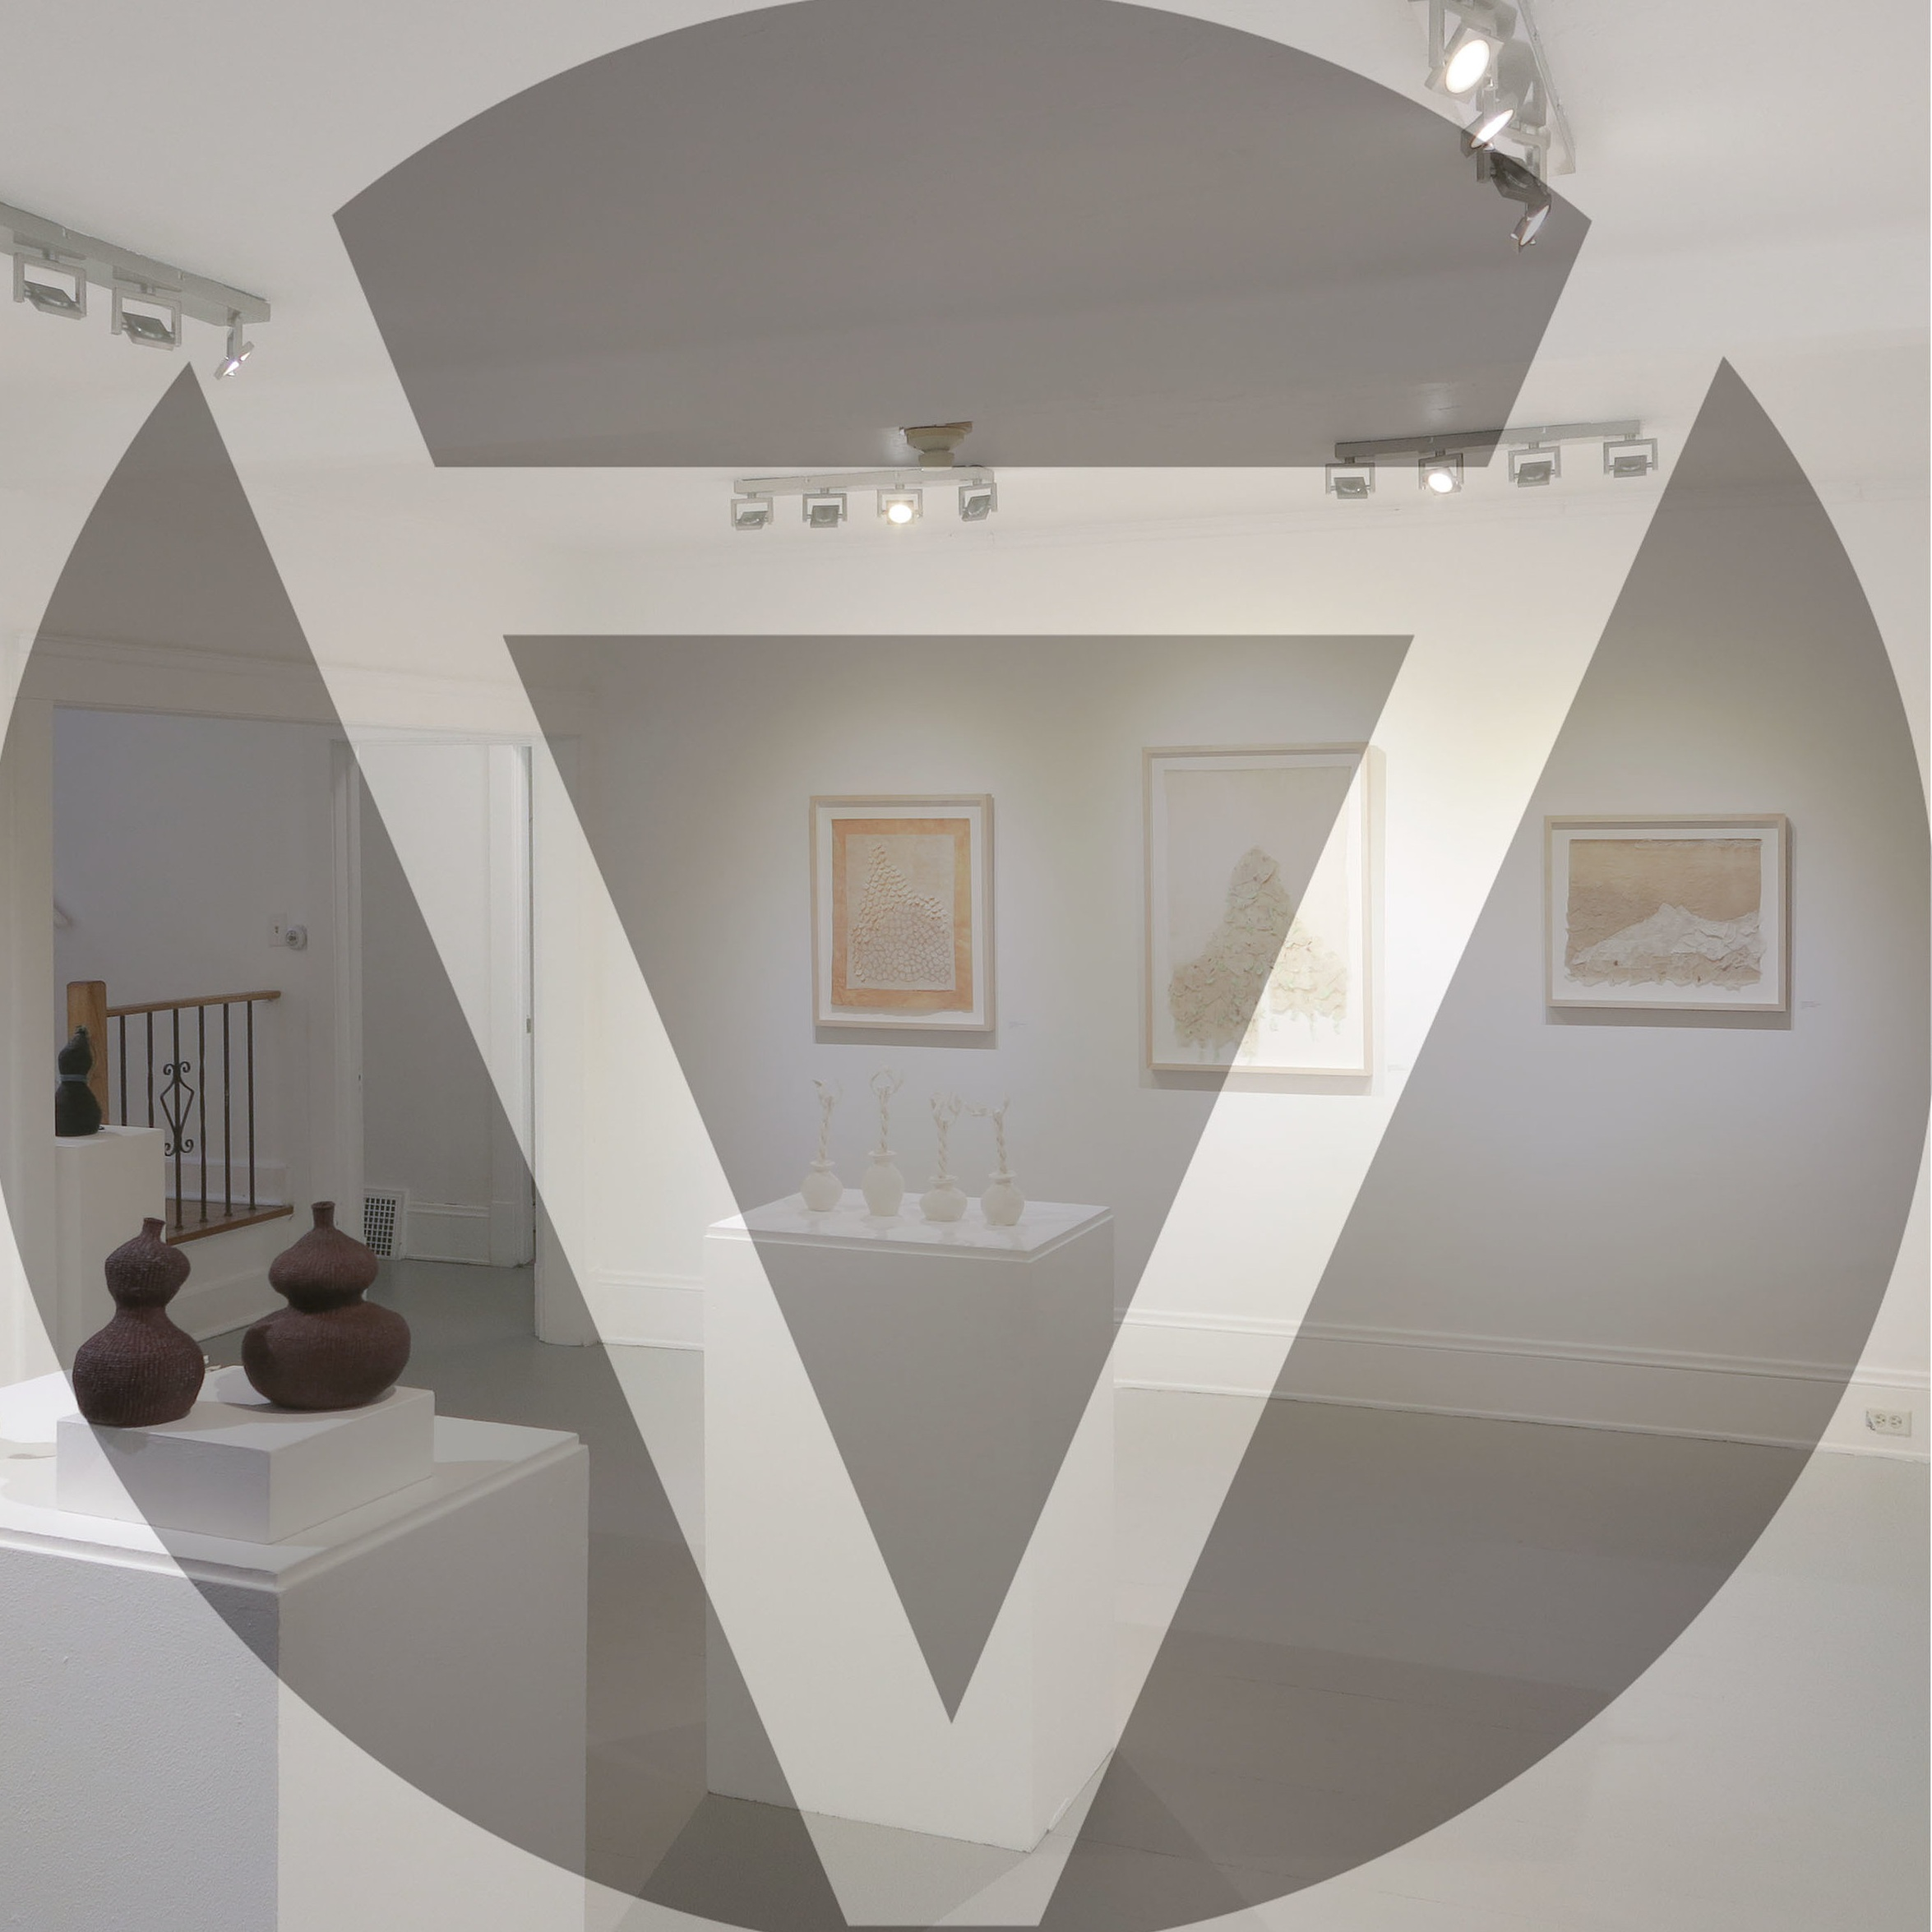 CALL FOR ARTISTS + Exhibition Proposals - SUBMIT YOUR EXHIBITION PROPOSAL FOR A GROUP OR SOLO SHOW AT THE OAC GALLERY IN PEPPER PIKE, OH FOR FALL 2019.DEADLINE: MAY 30, 2019NO ENTRY FEE